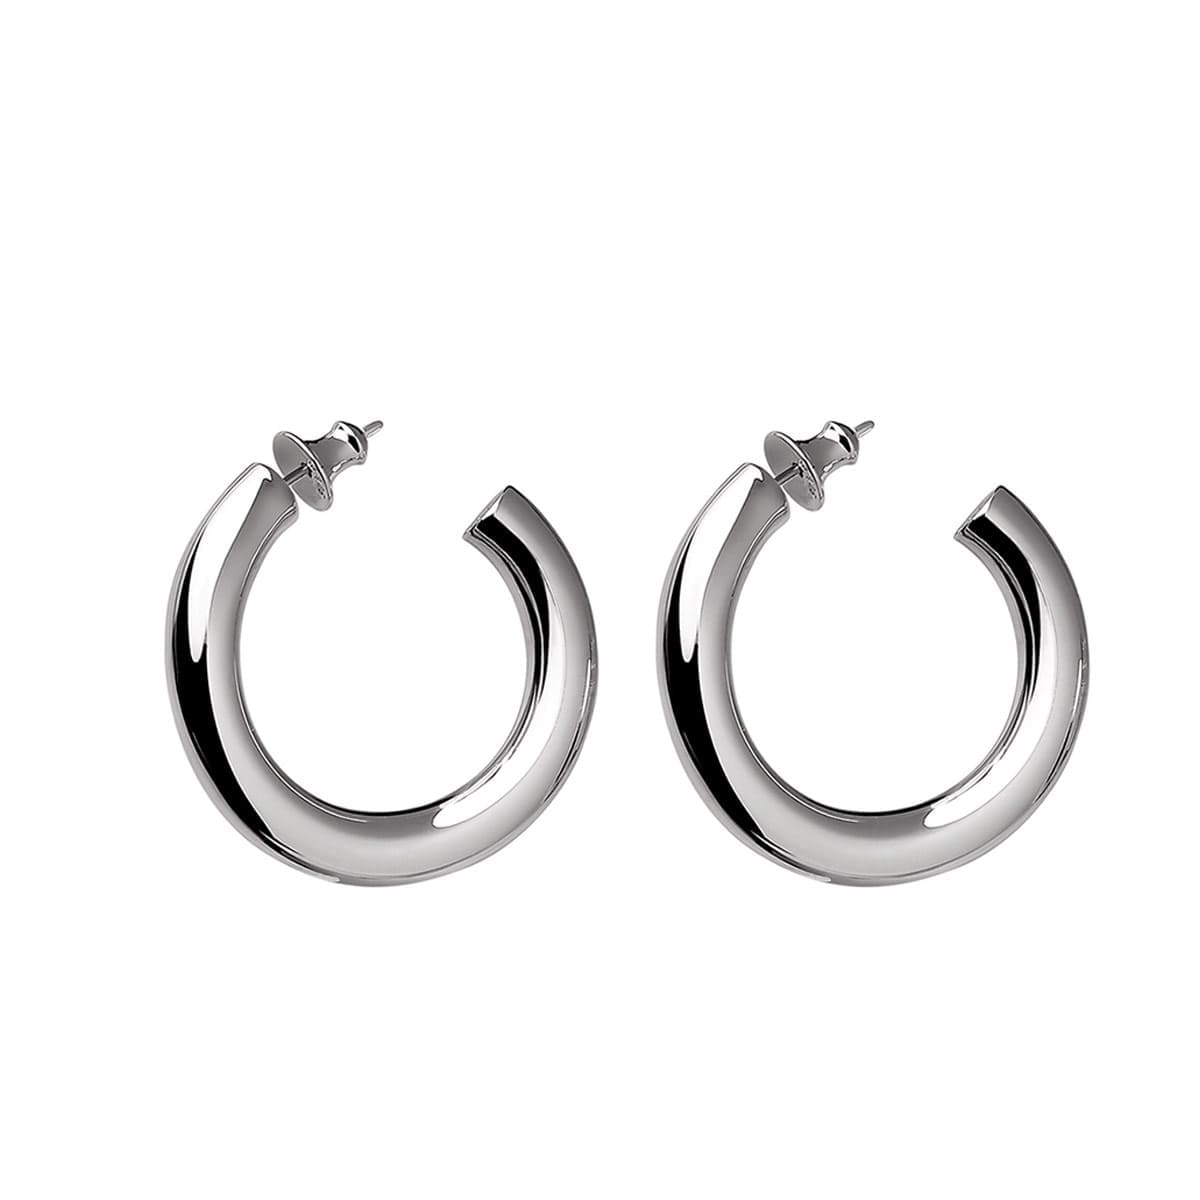 christofle sterling silver earrings